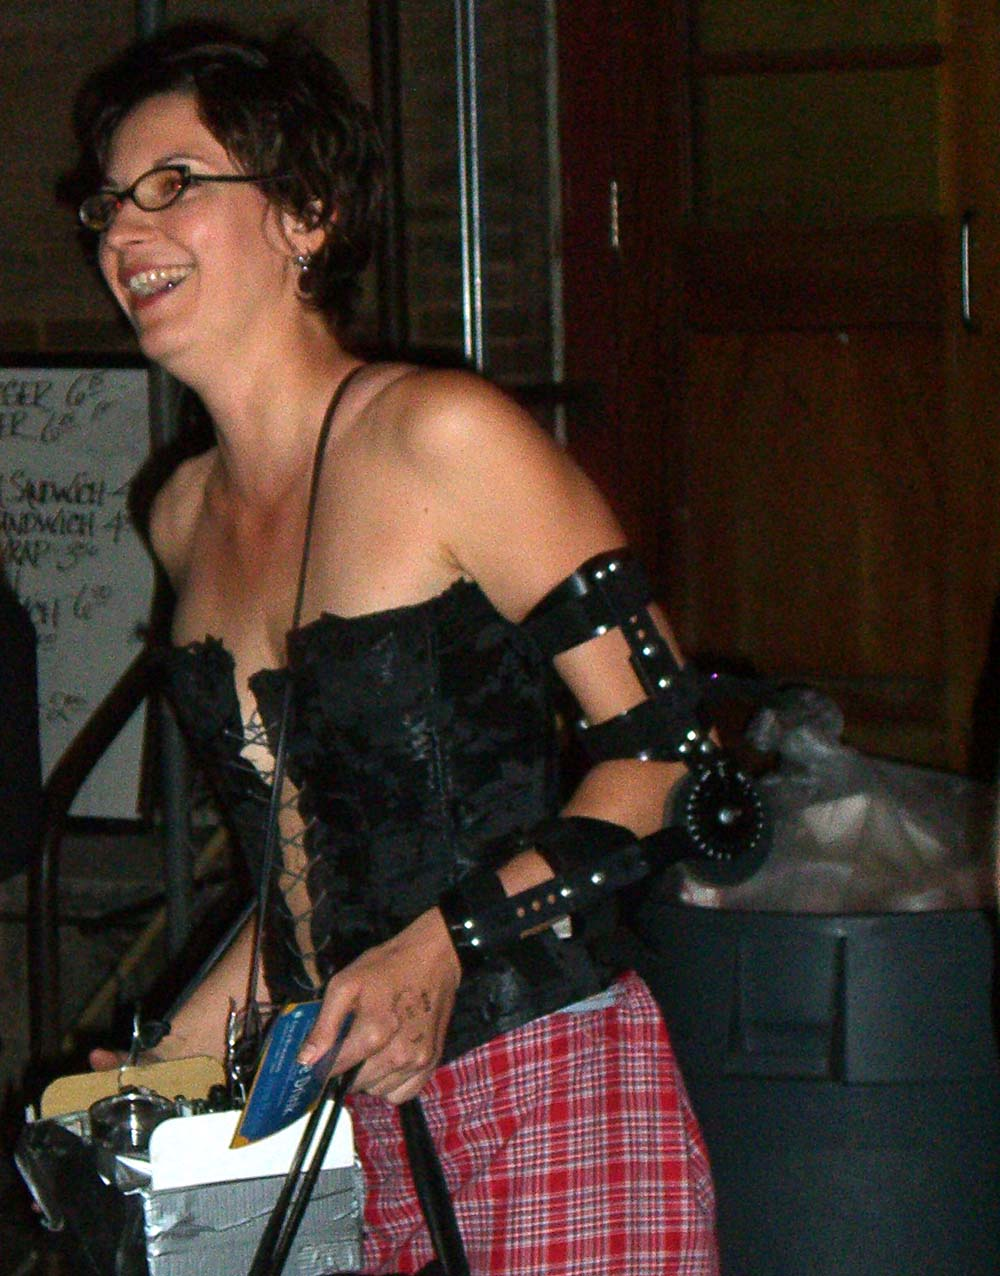 Stylish arm brace at the Steampunk party at SXSW 2007, evoking a robot arm